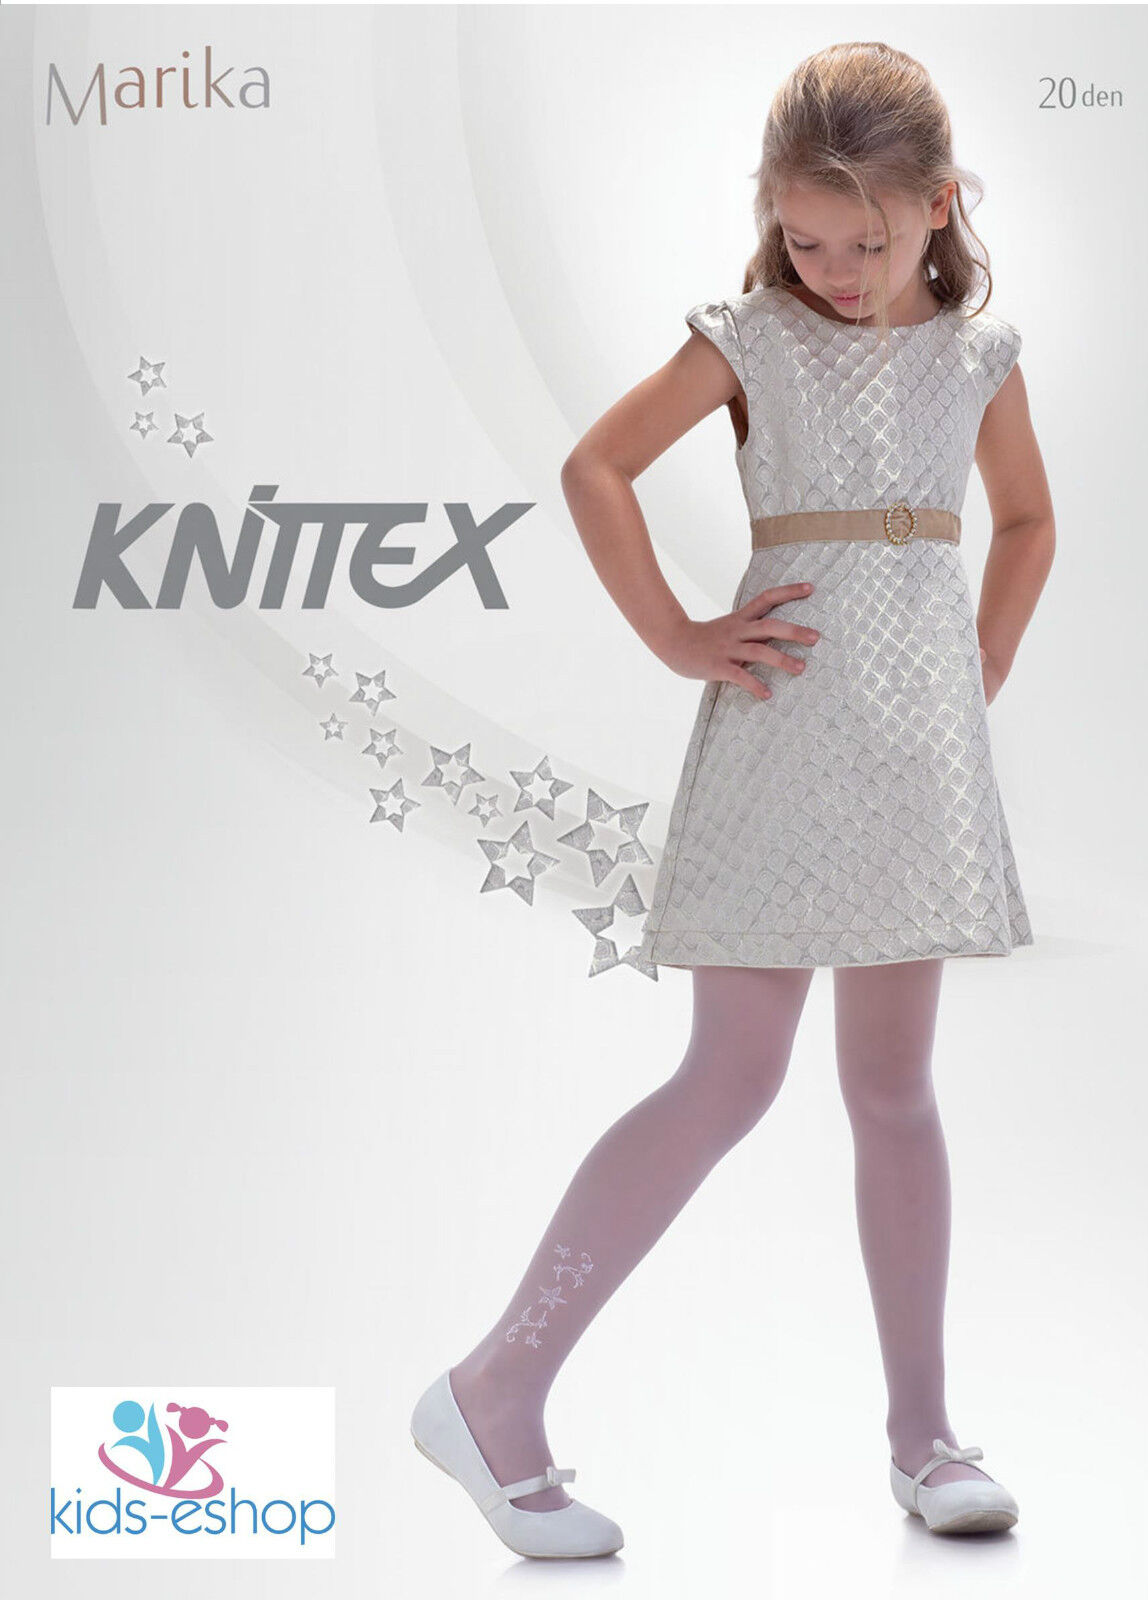 Patterned White Girls Tights Formal Party Communion Bridesmaids Marika